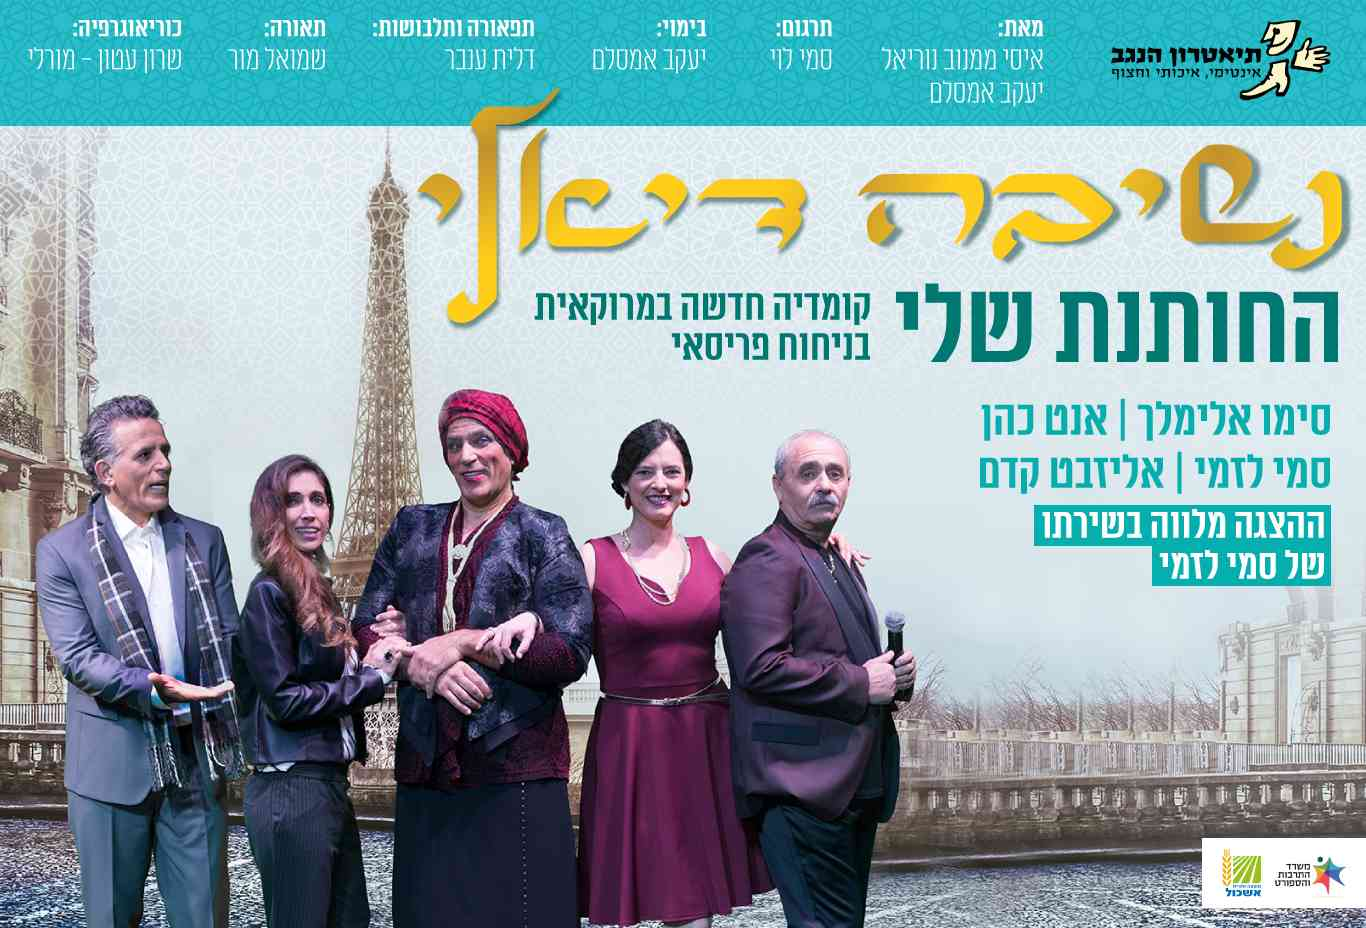 You are currently viewing נשיבה דיאלי – תיאטראות אילת. שעה 19:30